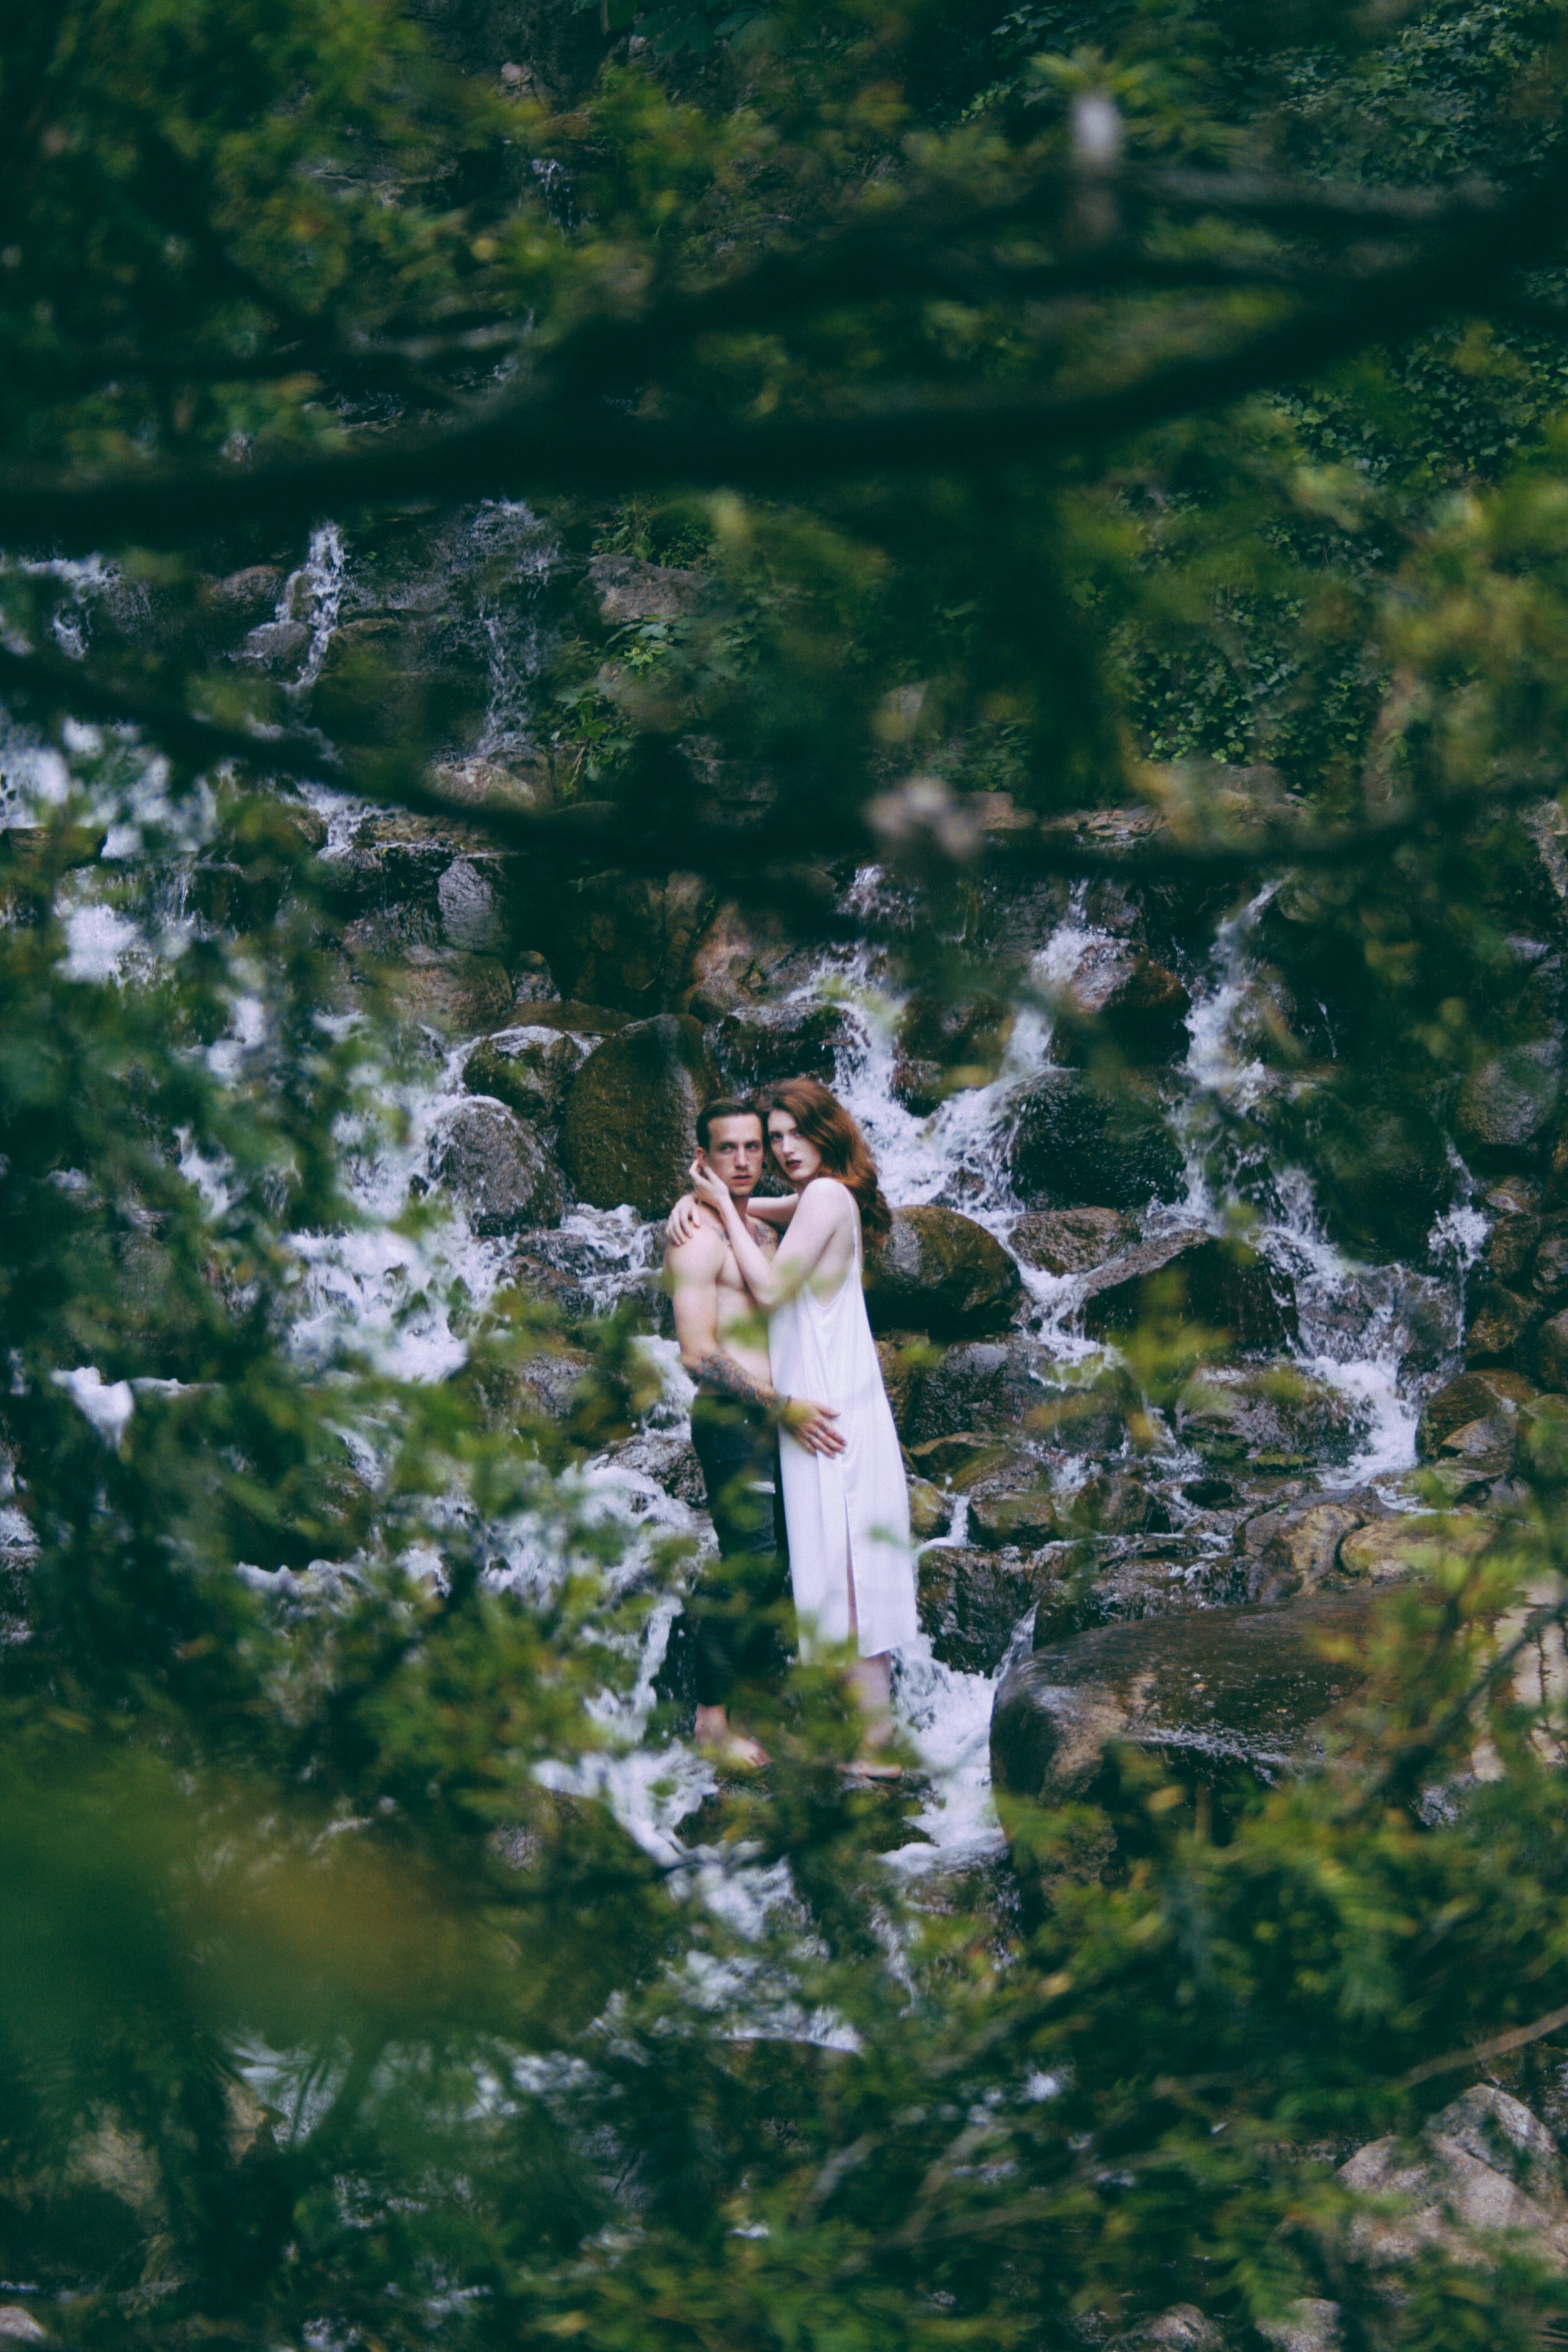 A shirtless man and a woman in a dress embrace near a waterfall in the woods.